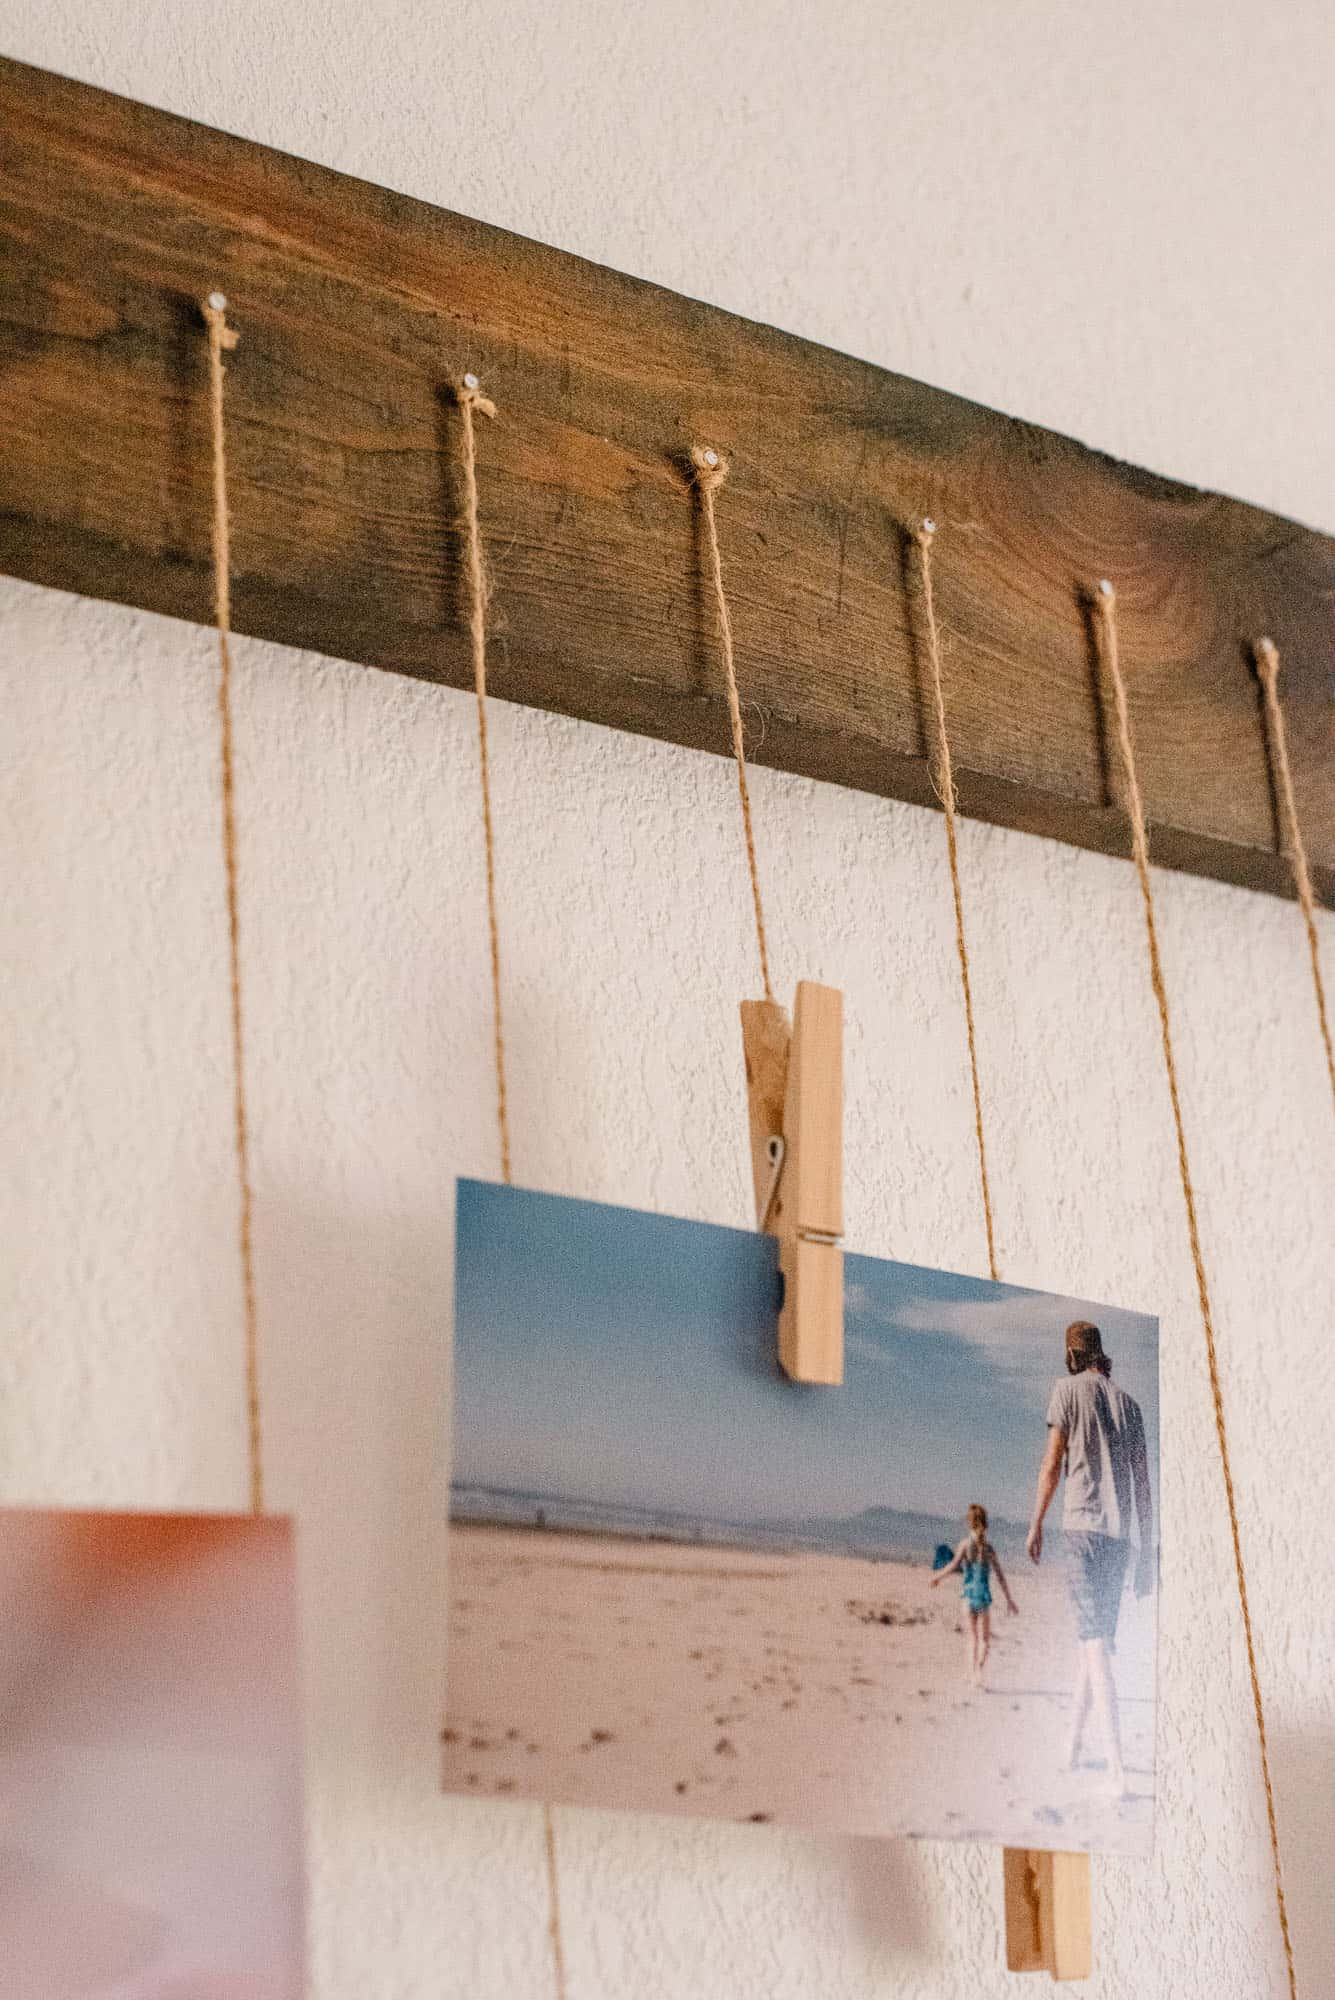 many photos hanging by string clipped on a clothes pin hanging from string on a nail on a wood board